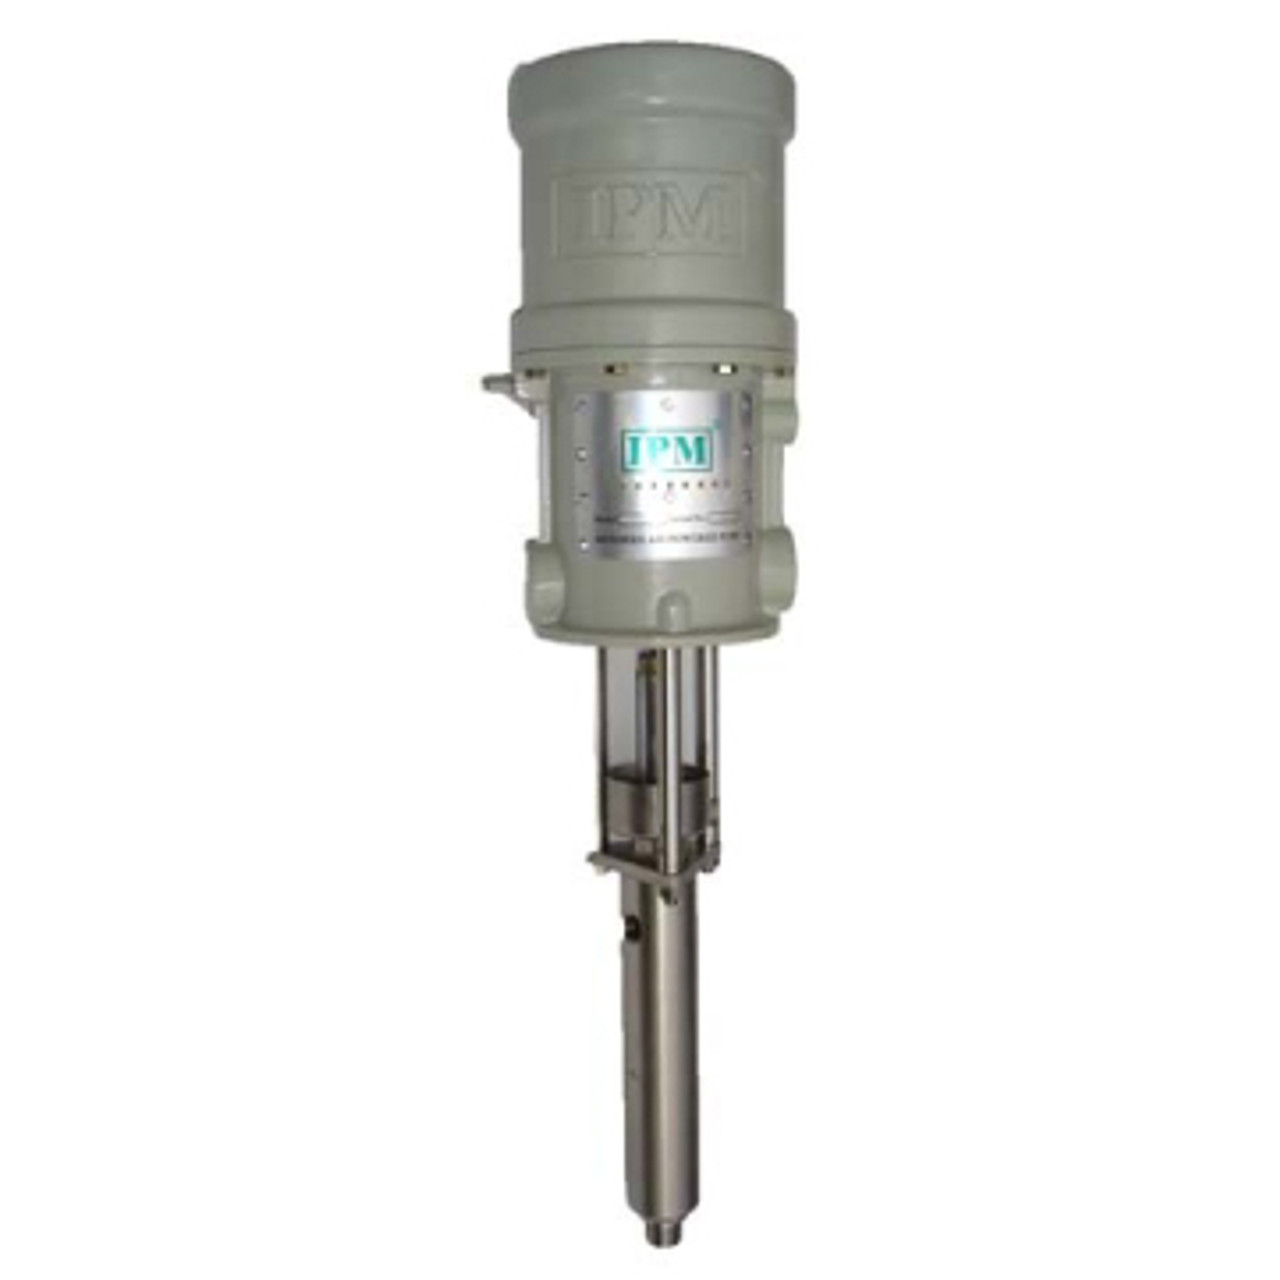 IPM IP-10S Transfer Pump (10:1 Ratio)